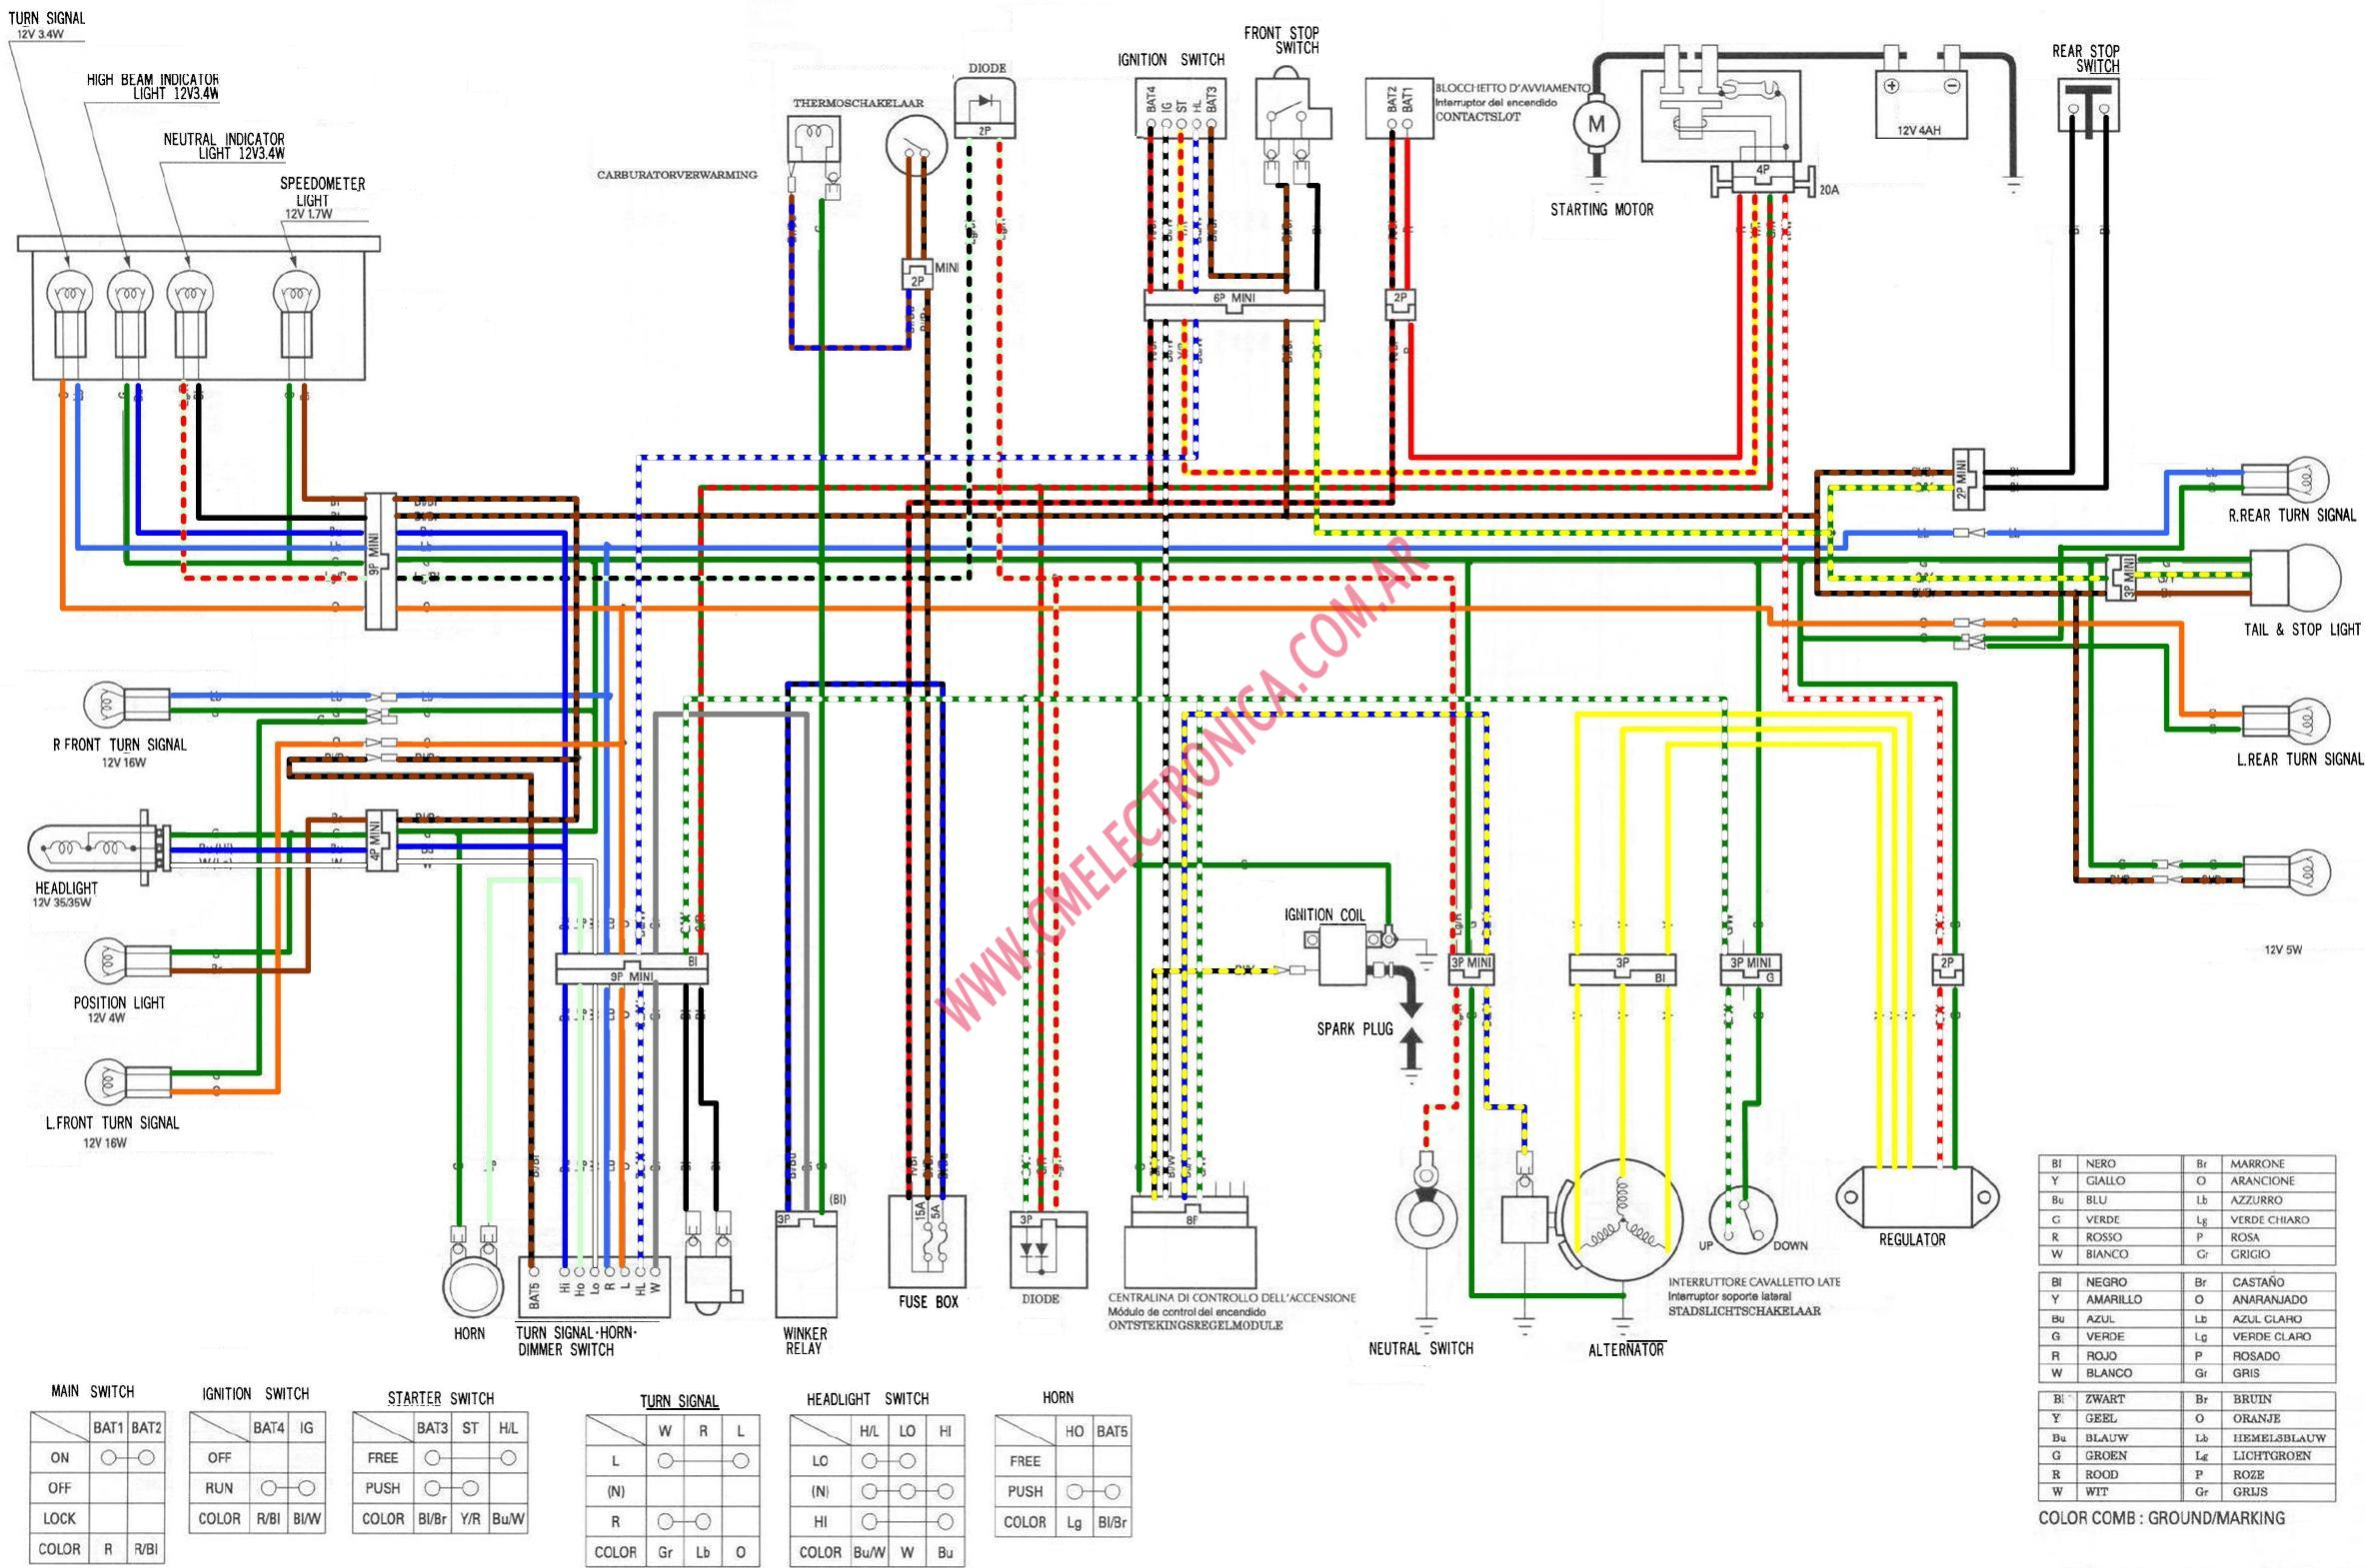 Honda Xr 125 L Wiring Diagram Simple Electrical Ttr125 Chrysler 440 Ignition 25 Hp Evinrude Kawasaki Yamaha Ttr 100